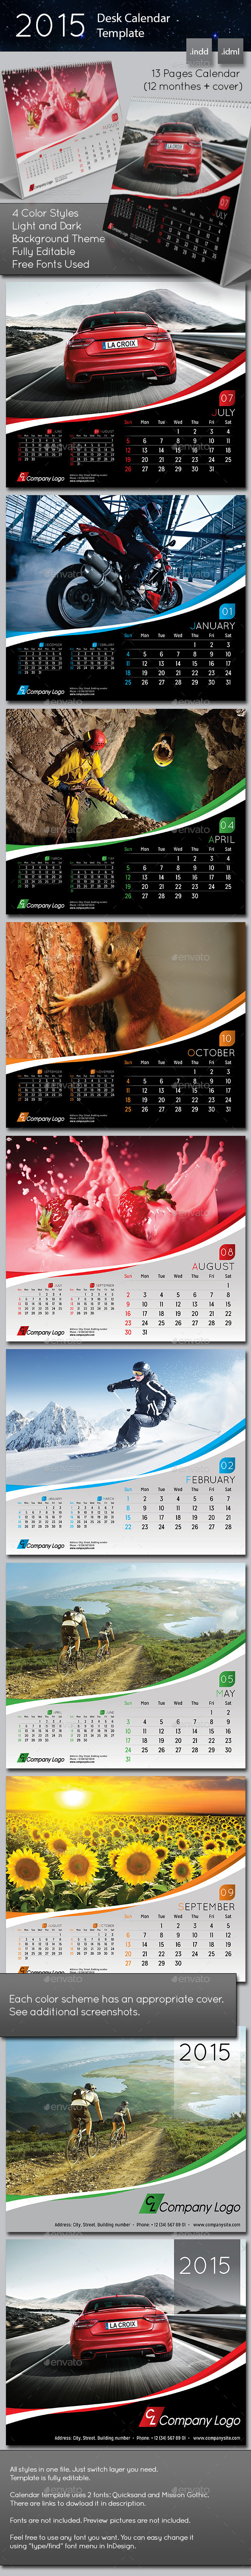 GraphicRiver 2015 Desk Calendar template 9128199